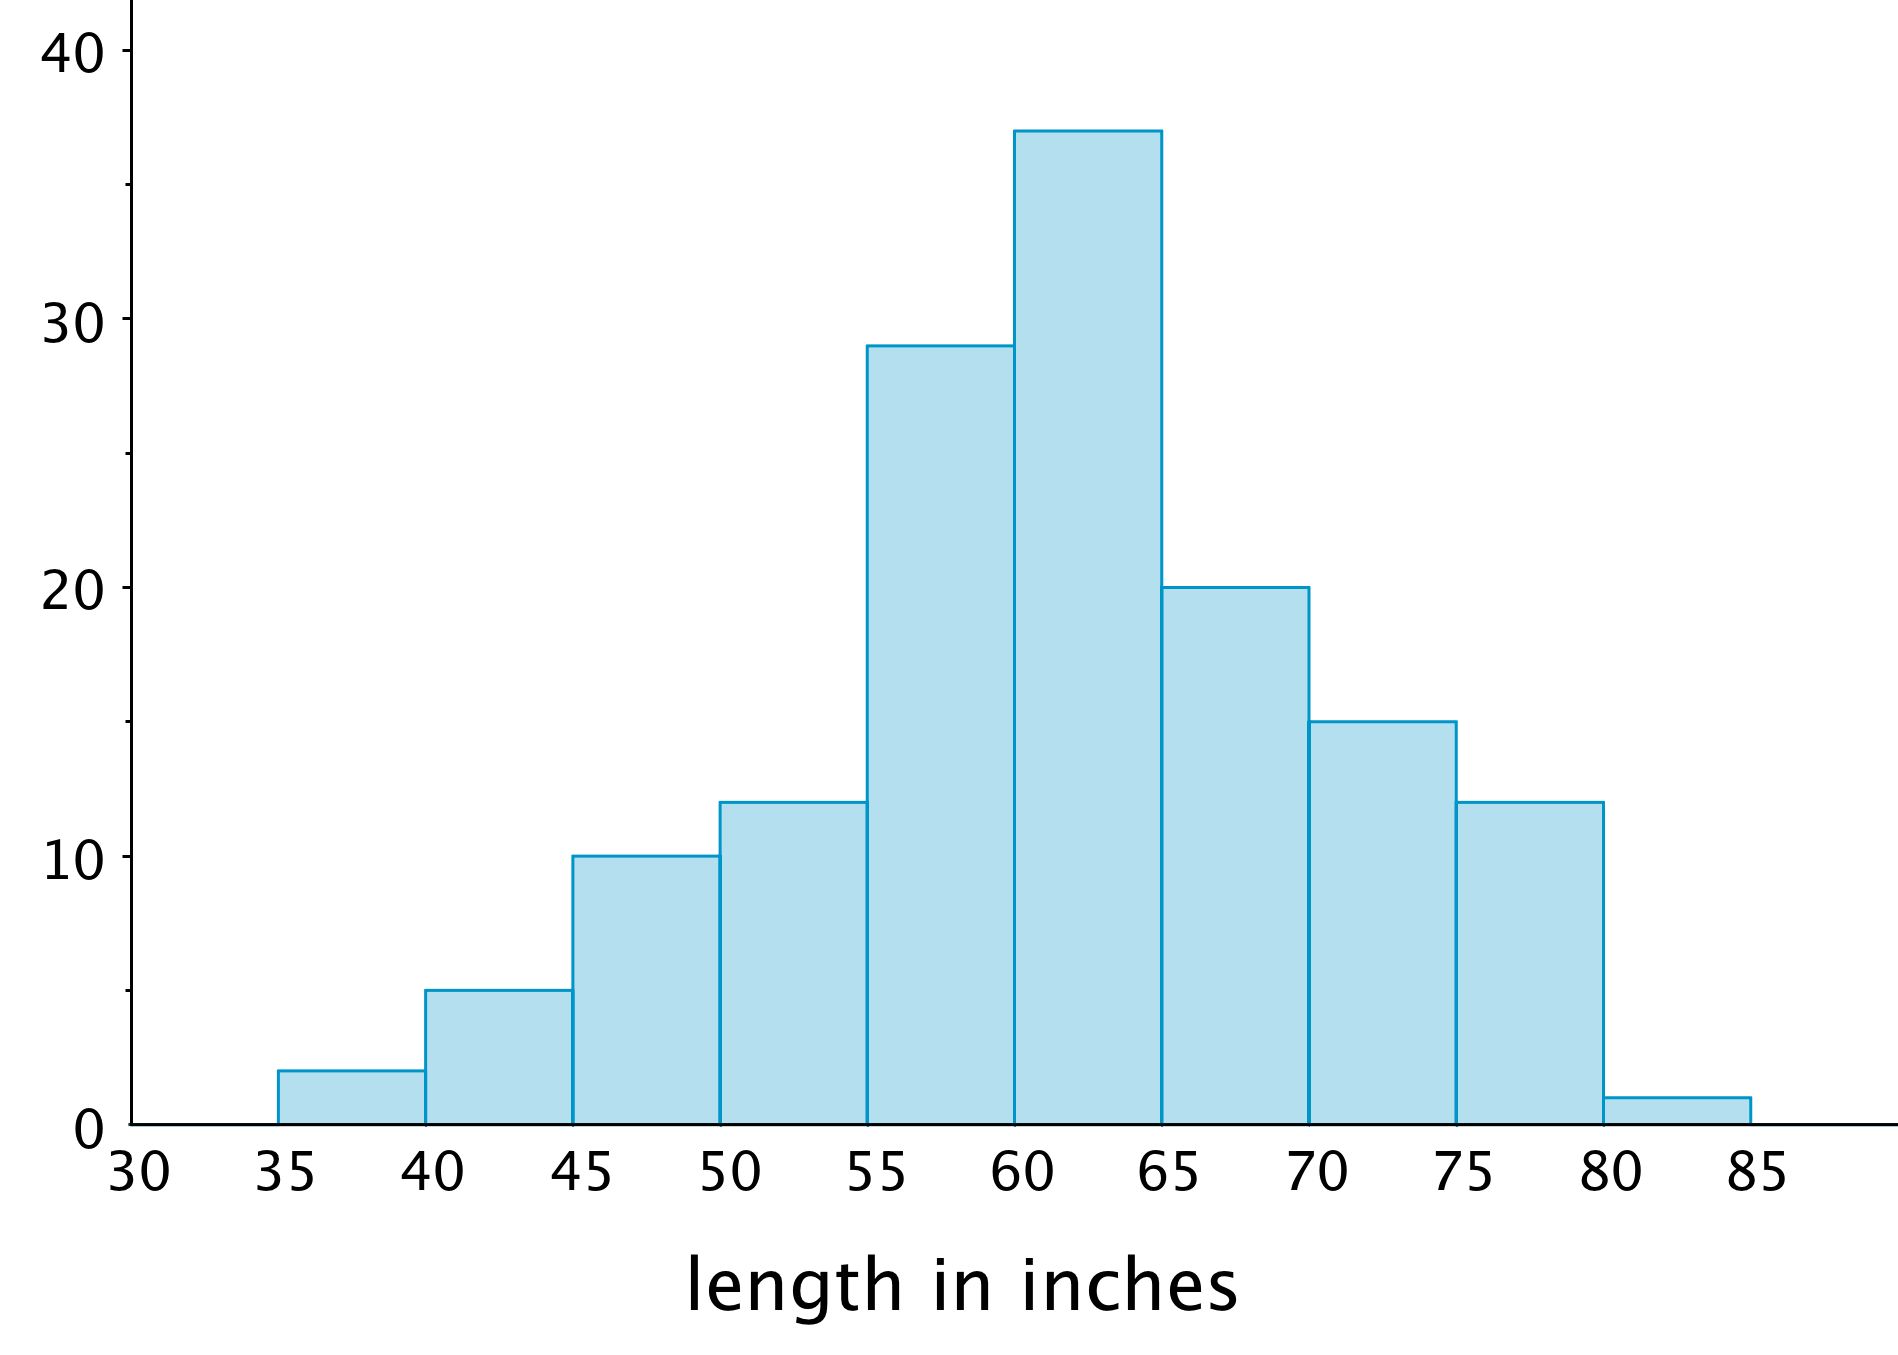 "A histogram.  The horizontal axis is labeled ""length in inches,"" the numbers 30 through 85, in increments of 5, are indicated.  On the vertical axis, the numbers 0 through 40, in increments of 10, are indicated, with tick marks midway between.  The data represented are approximately:  length from 35 up to 40 inches, 2; length from 40 up to 45 inches, 5; length from 45 up to 50 inches, 10; length from 50 inches up to 55 inches, 11; length from 55 up to 60 inches; 30; length from 60 up to 65 inches, 37; length from 65 up to 70 inches, 20; length from 70 up to 75 inches, 15; length from 75 to up to 80 inches, 11; length from 80 up to 85 inches, 1."